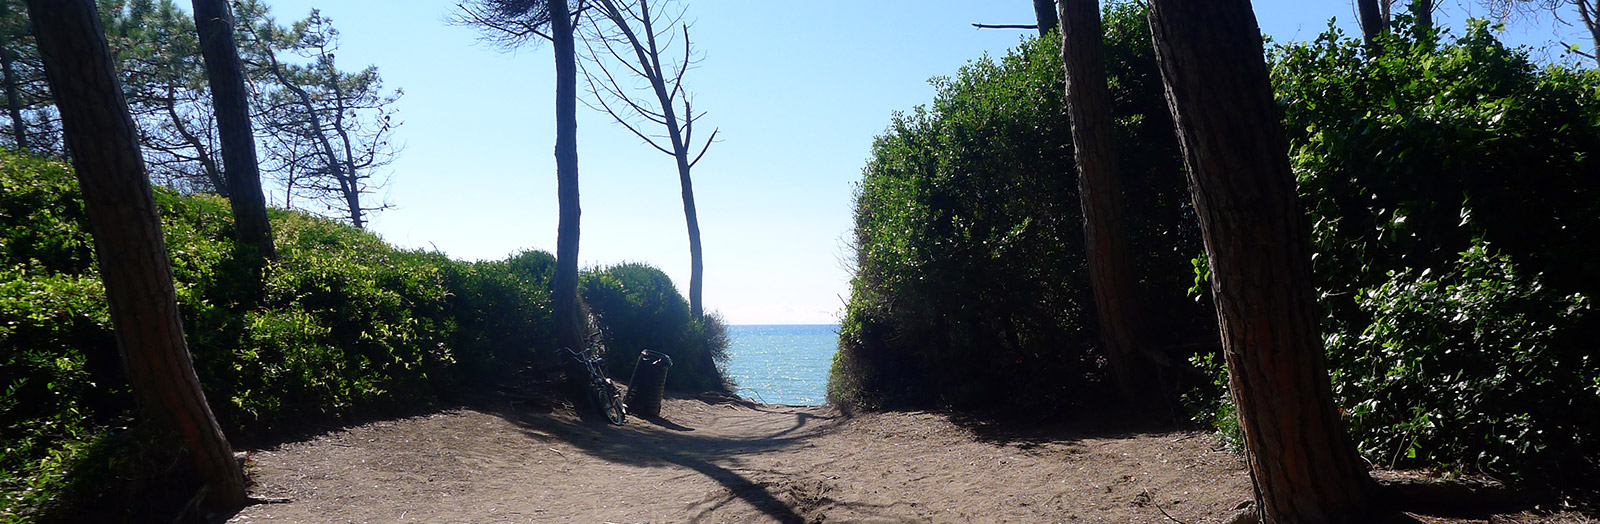 Beach view in Cecina Mare, Tuscany, 2014